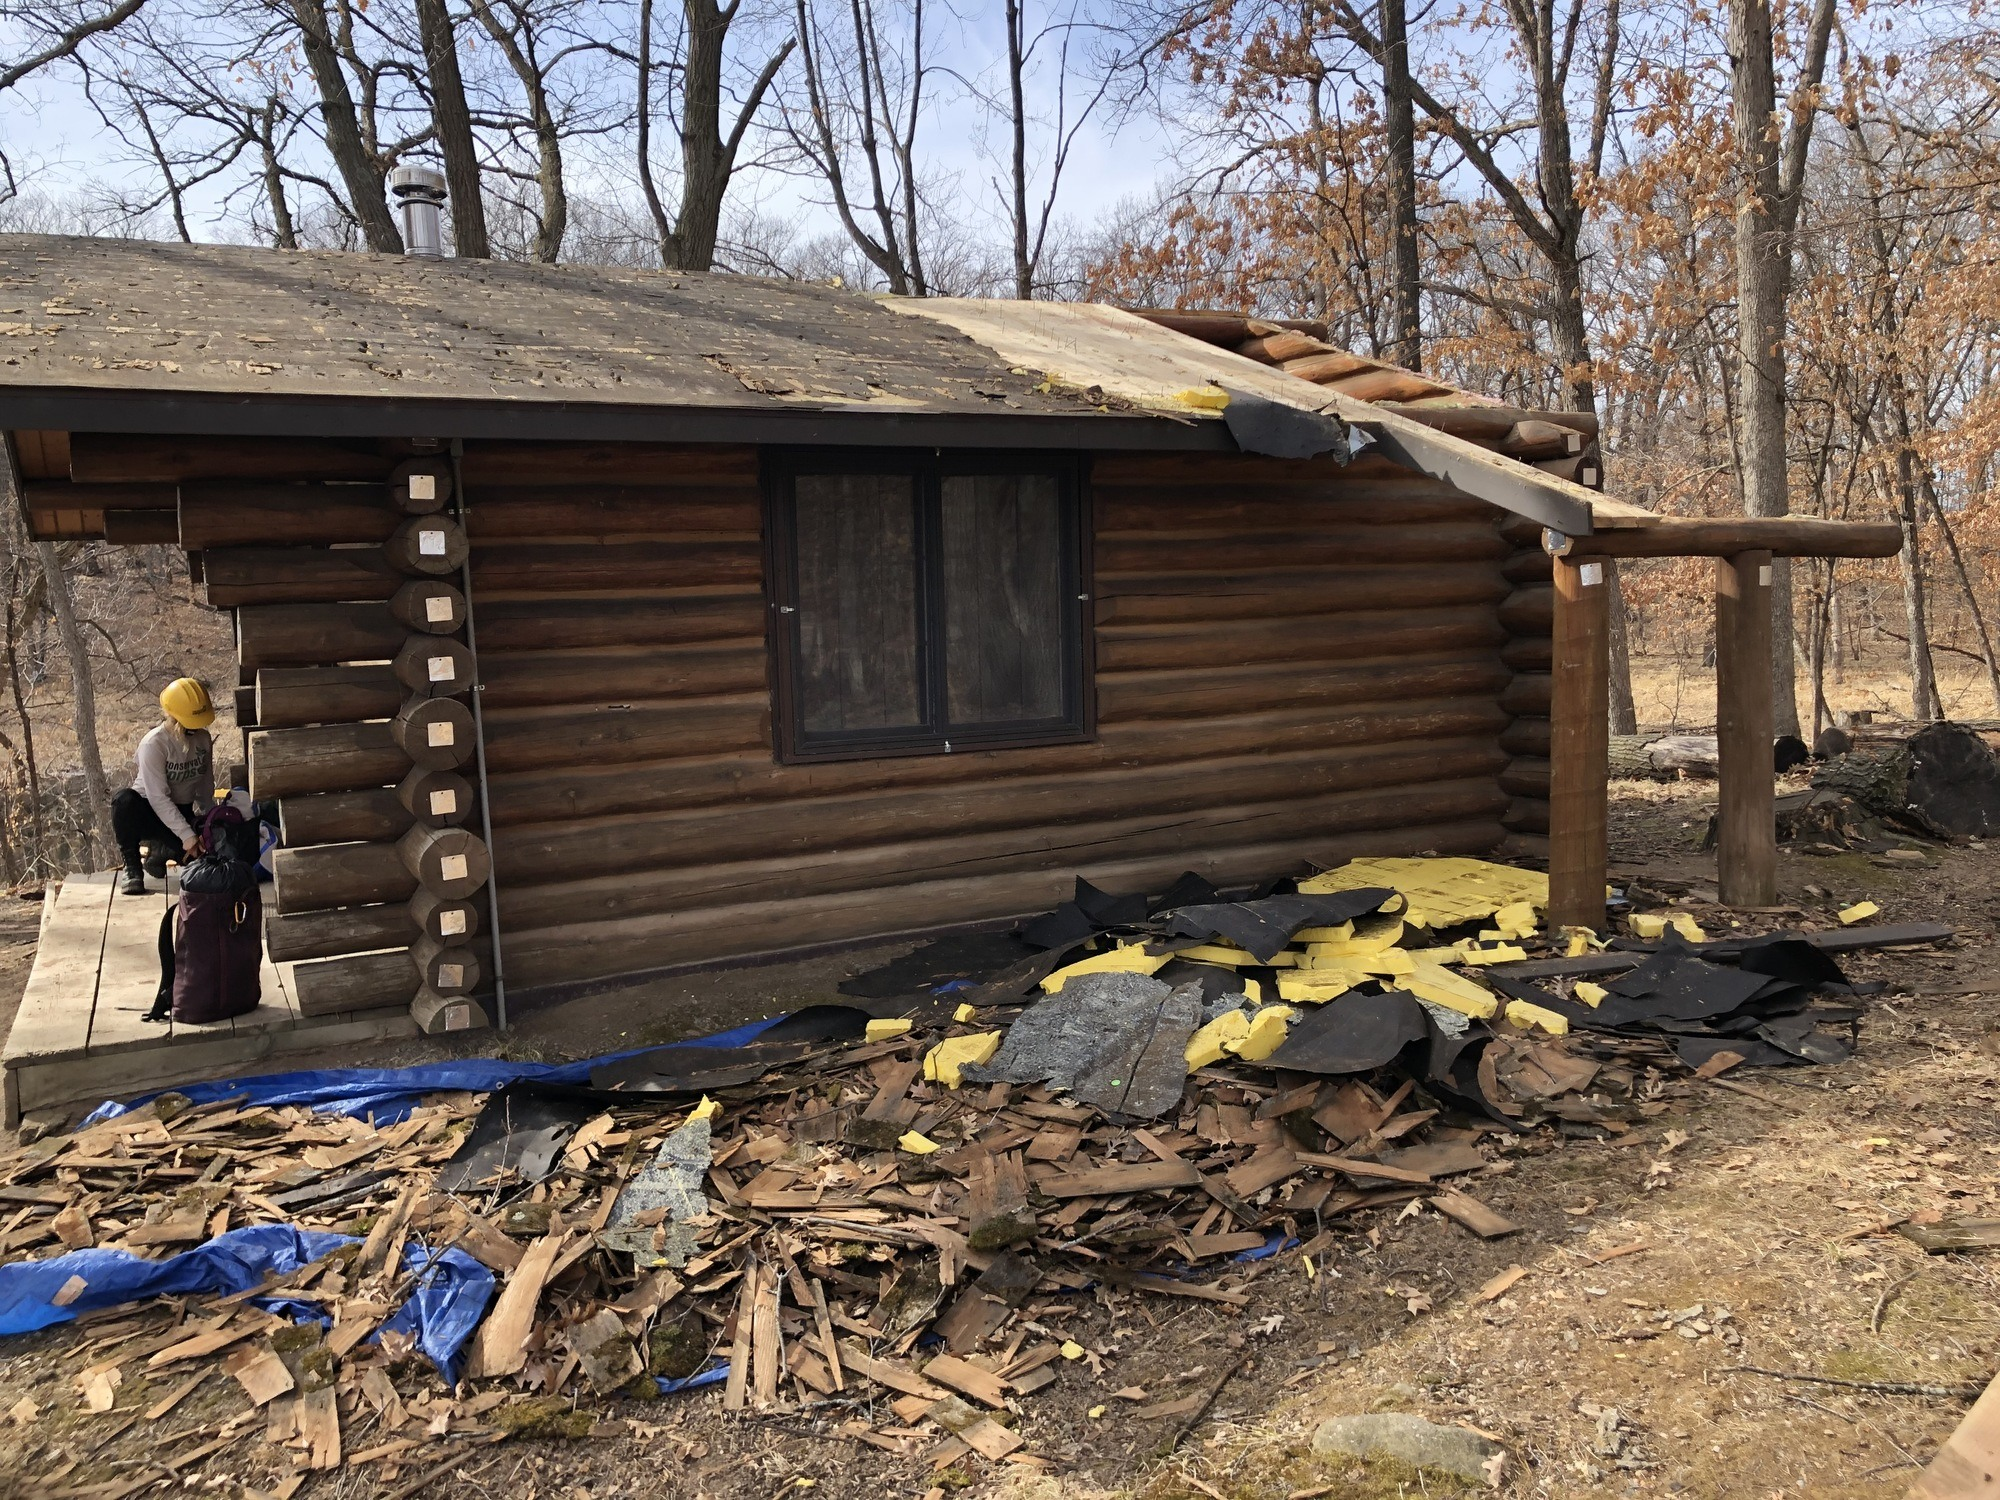 Cabin with part of roof missing in fall